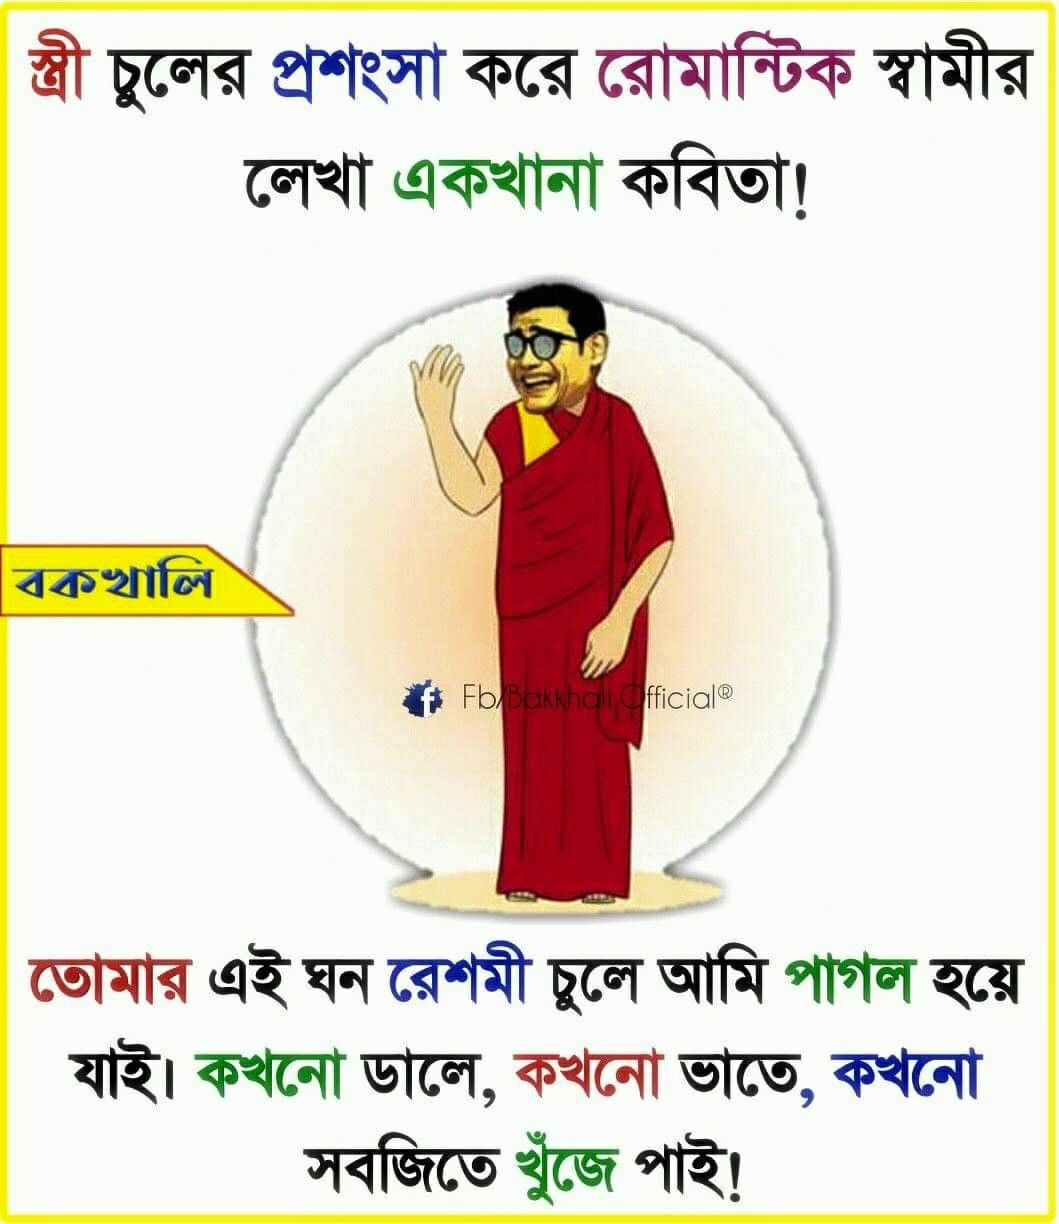 Pin By Foysal Ahmed 089 On Bengali Memes Very Funny Pictures Funny English Jokes Cute Funny Pics